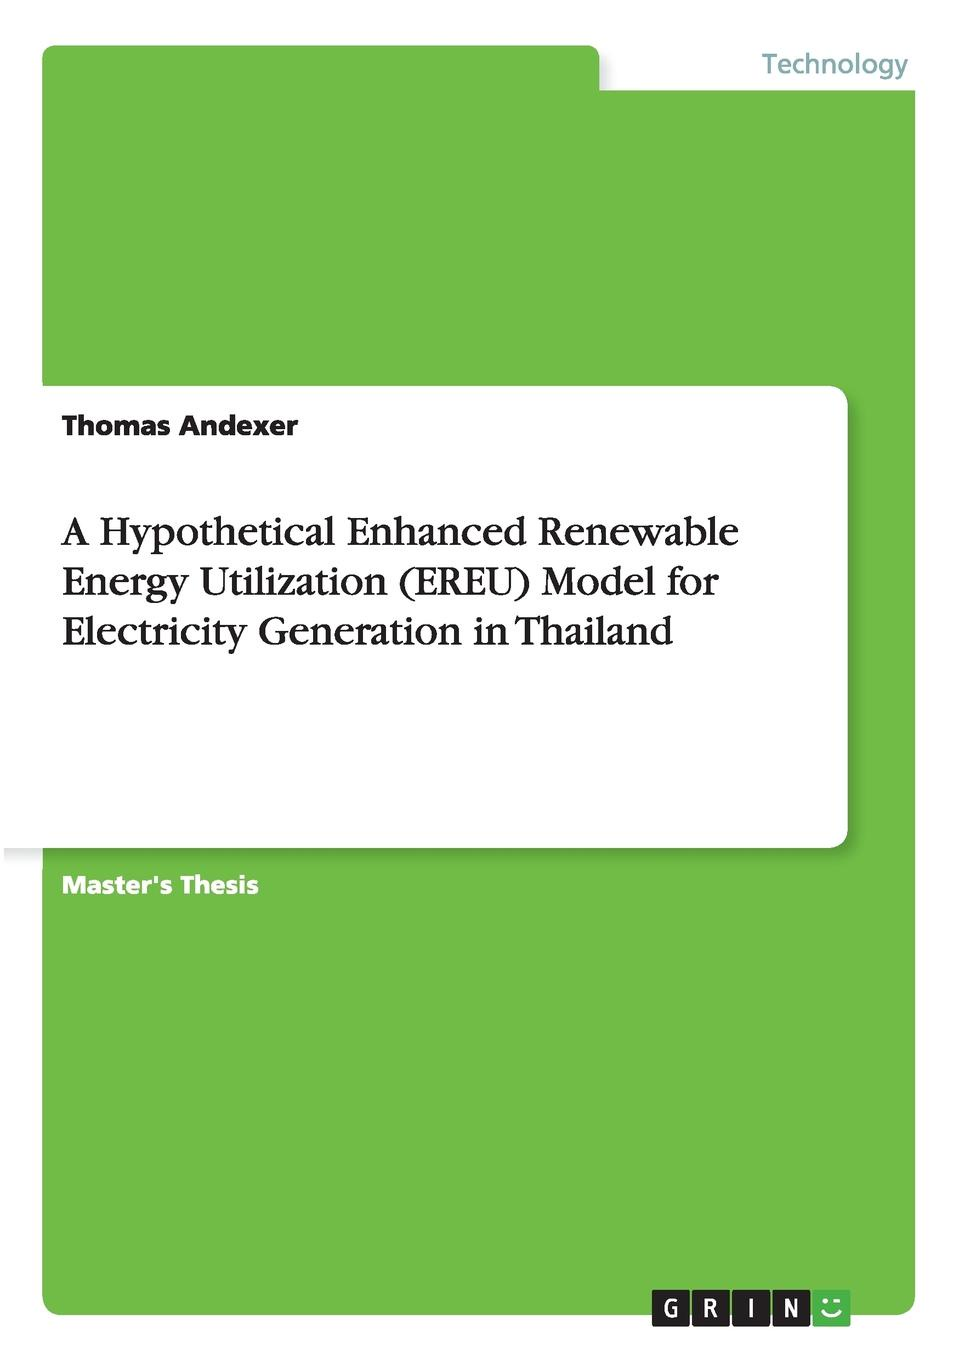 Фото - Thomas Andexer A Hypothetical Enhanced Renewable Energy Utilization (EREU) Model for Electricity Generation in Thailand ножка для вертящегося стула thailand such as